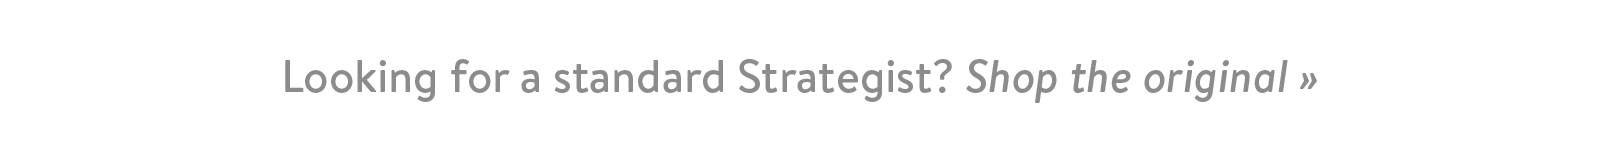 Looking for a standard Strategist? Shop the original ?